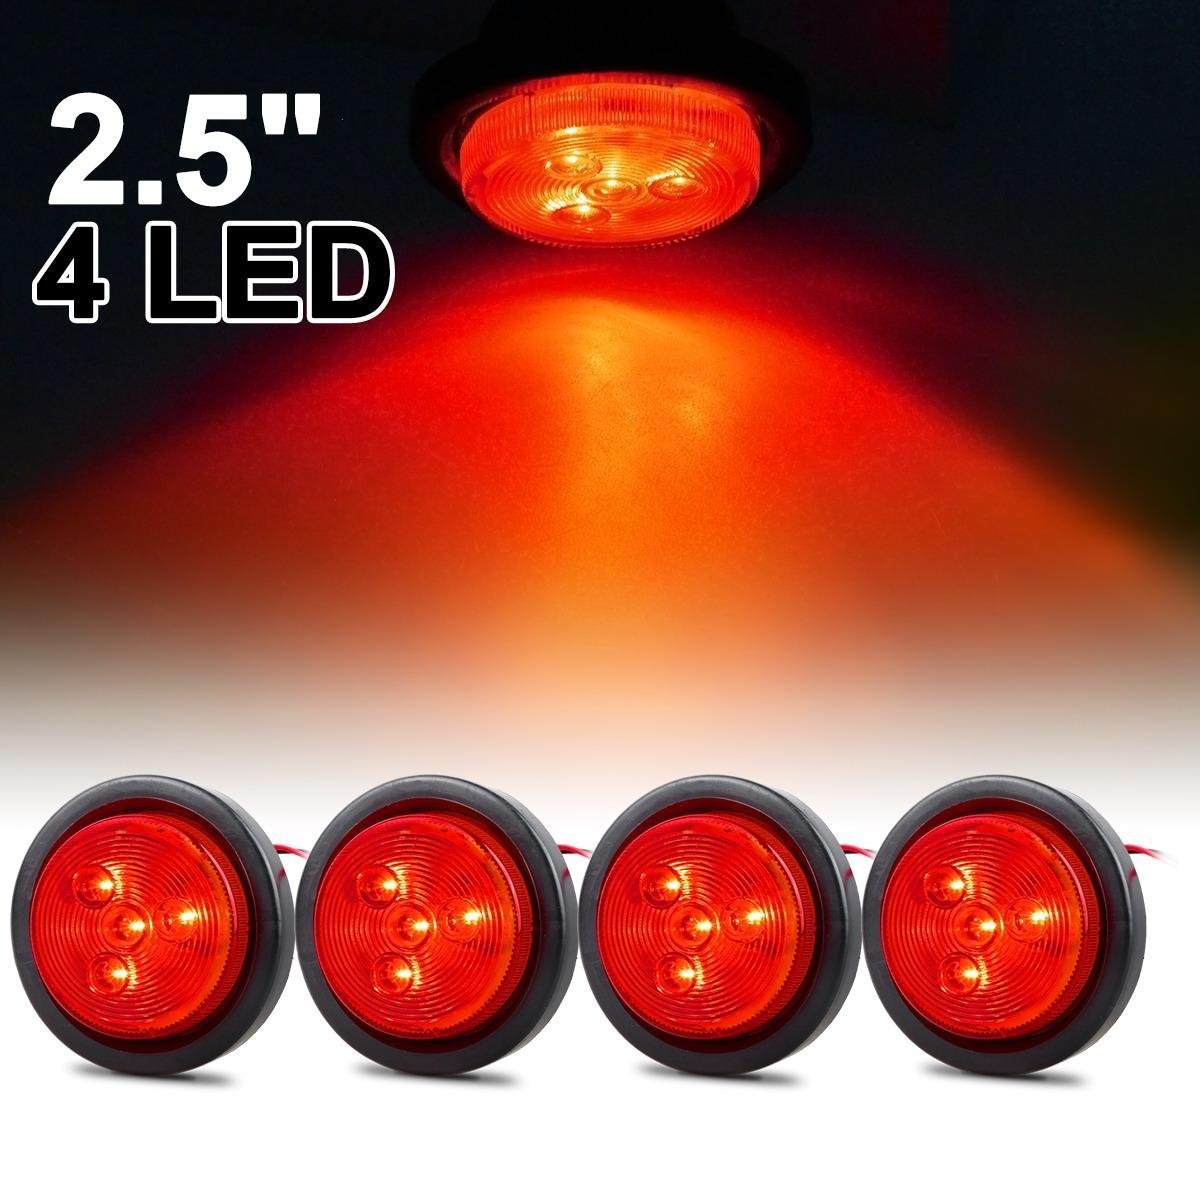 Buy Flush Flange Mount 4 Round Red Lights Stop Turn Tail Signal Utility Trailer St In Cheap